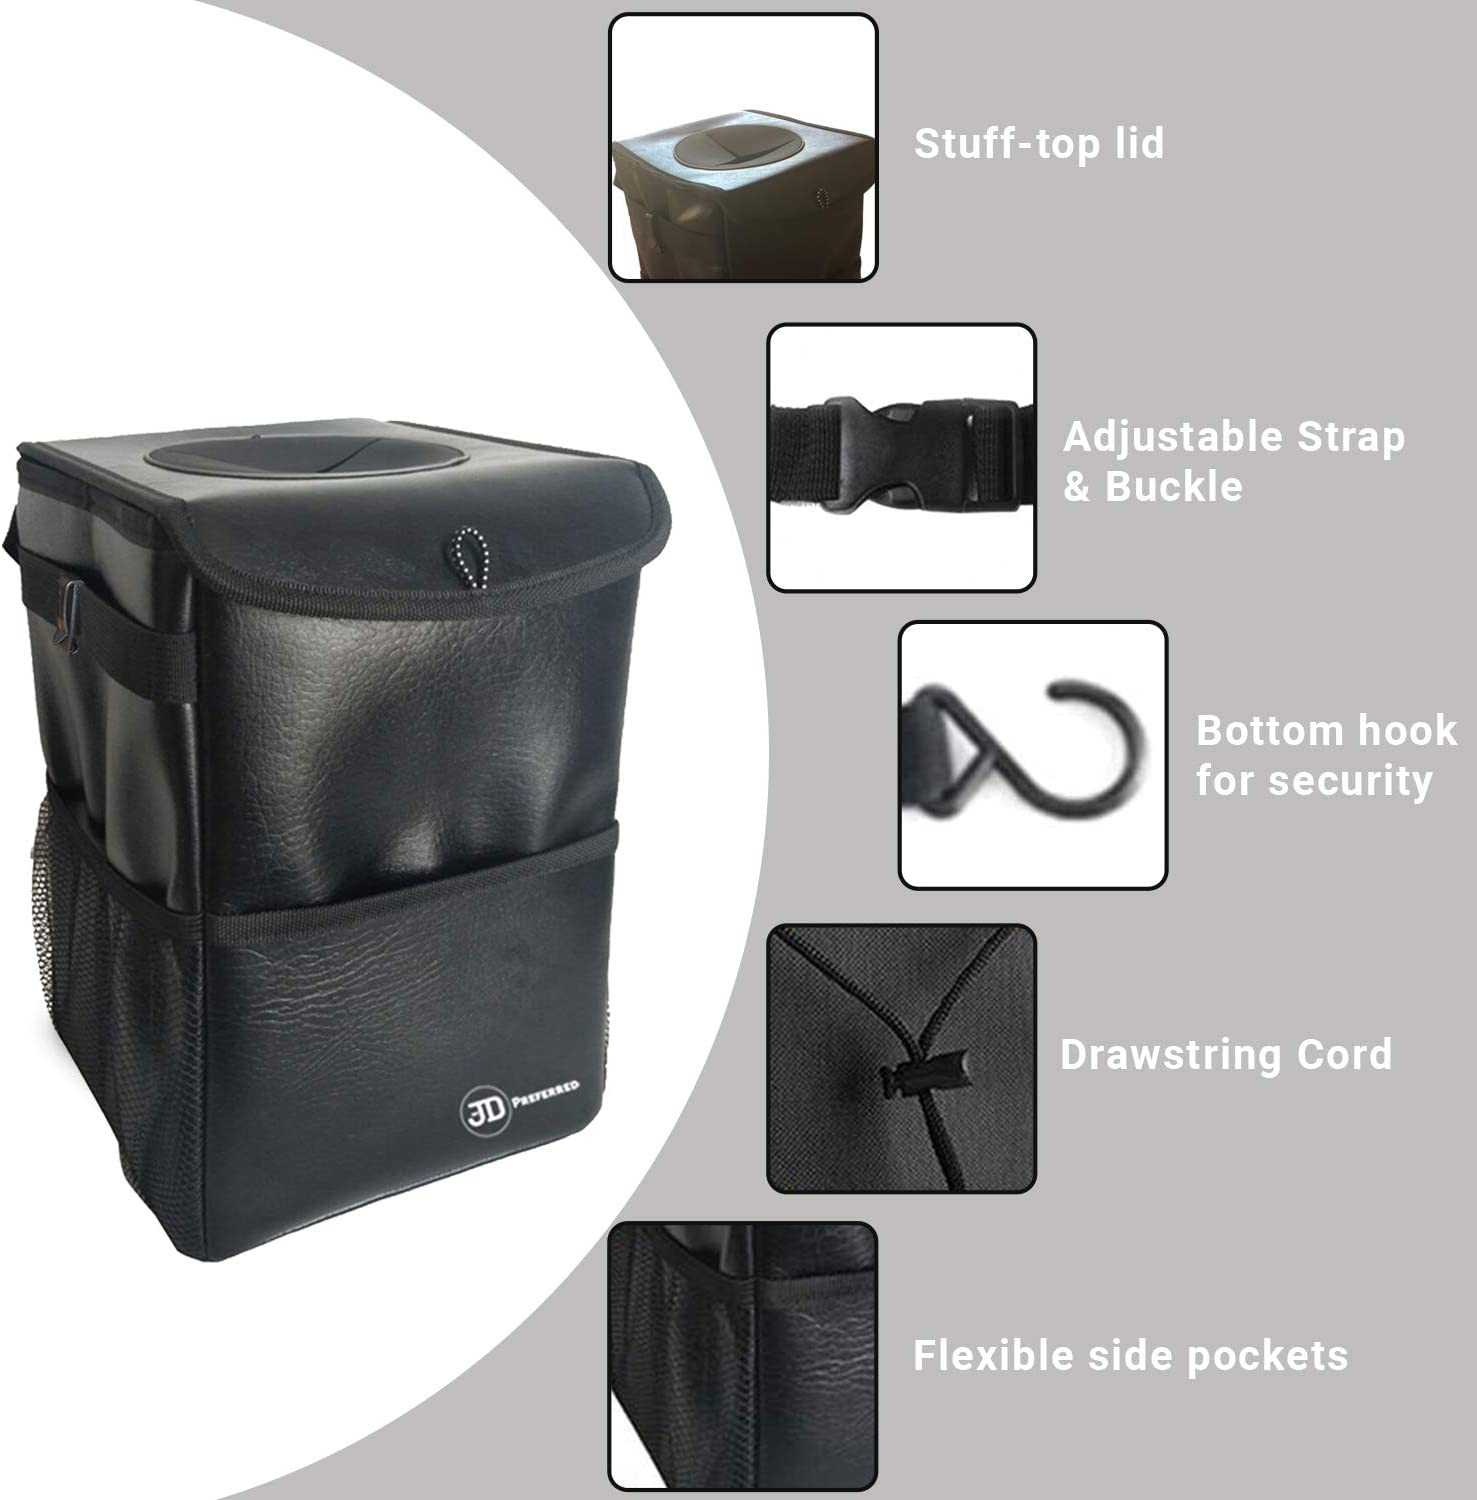 Portable Trash Bin-Best for Vehicles RV Odor Free JD Preferred Boat Trash Can with Lid-Premium Quality Hanging Car Garbage Bag with Storage Pockets-100/% Leak Proof Boats